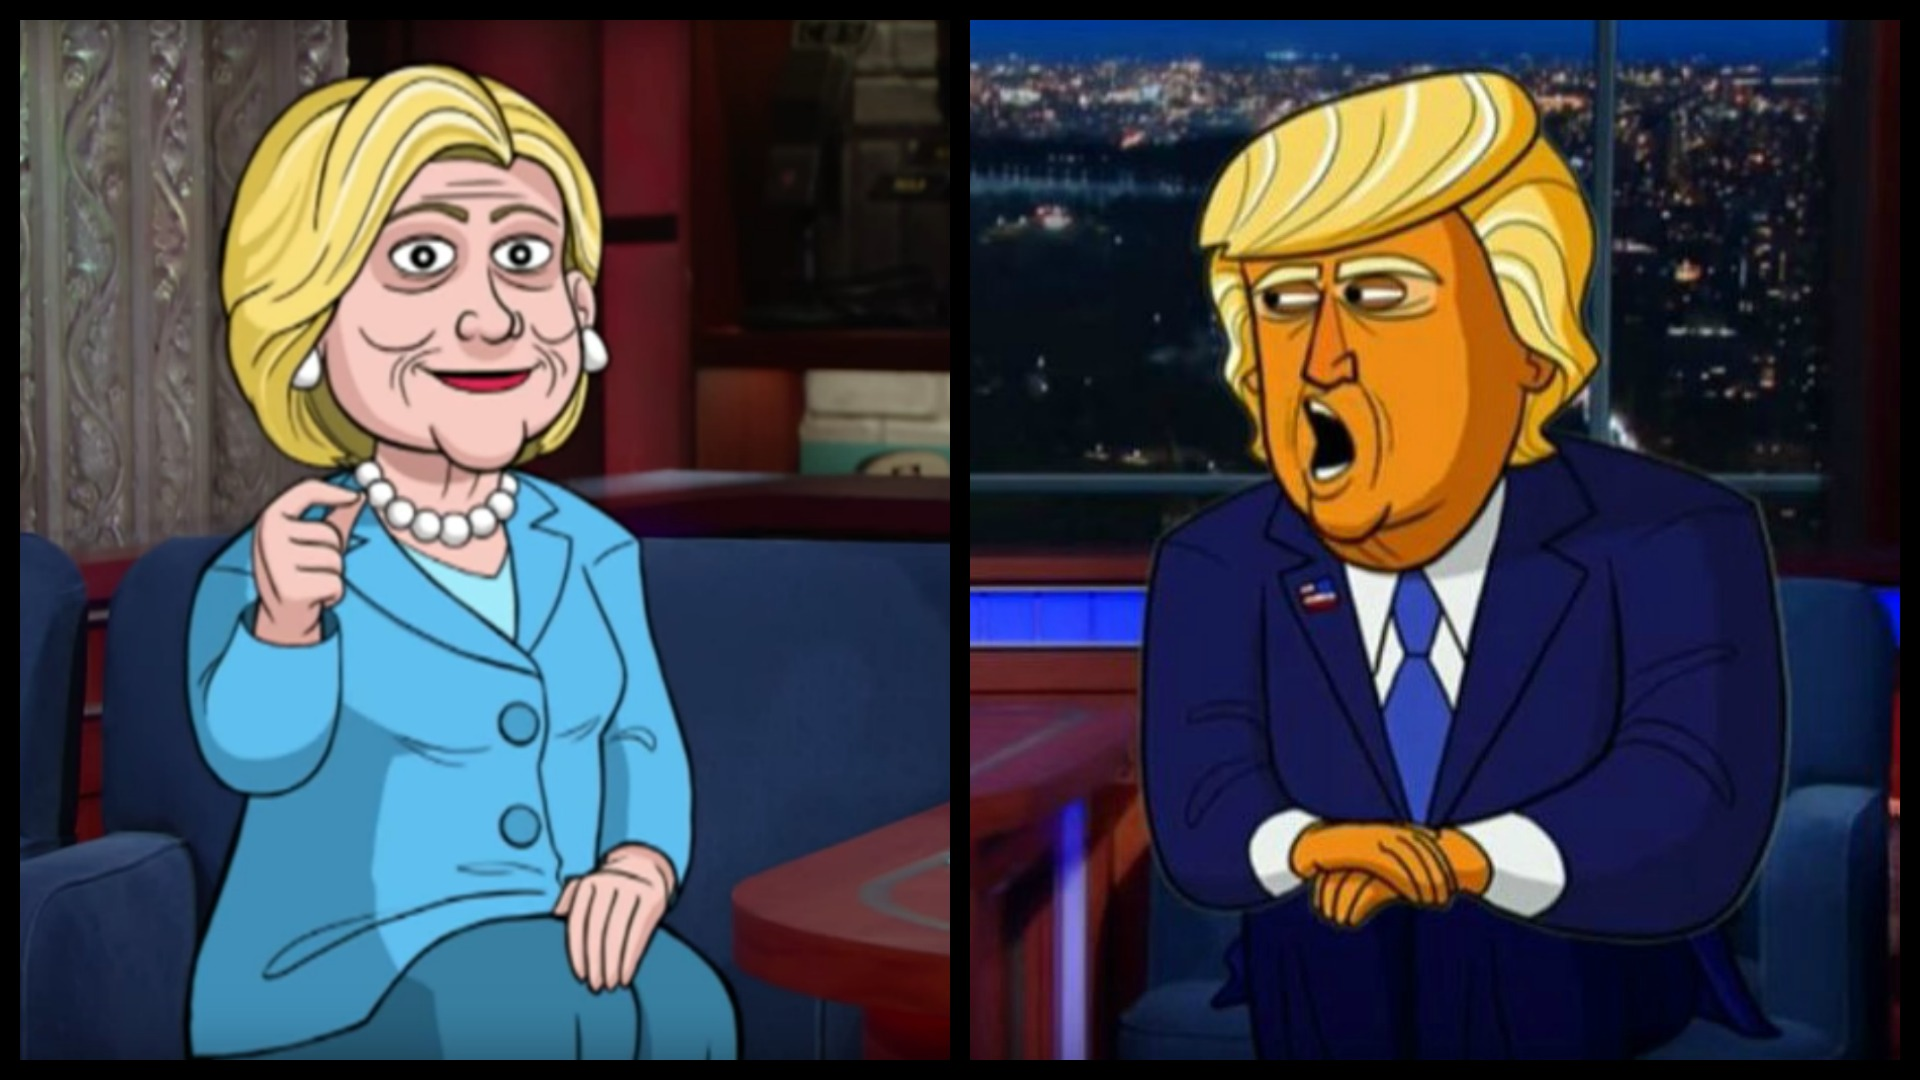 Can you tell the difference between the cartoons and the candidates?